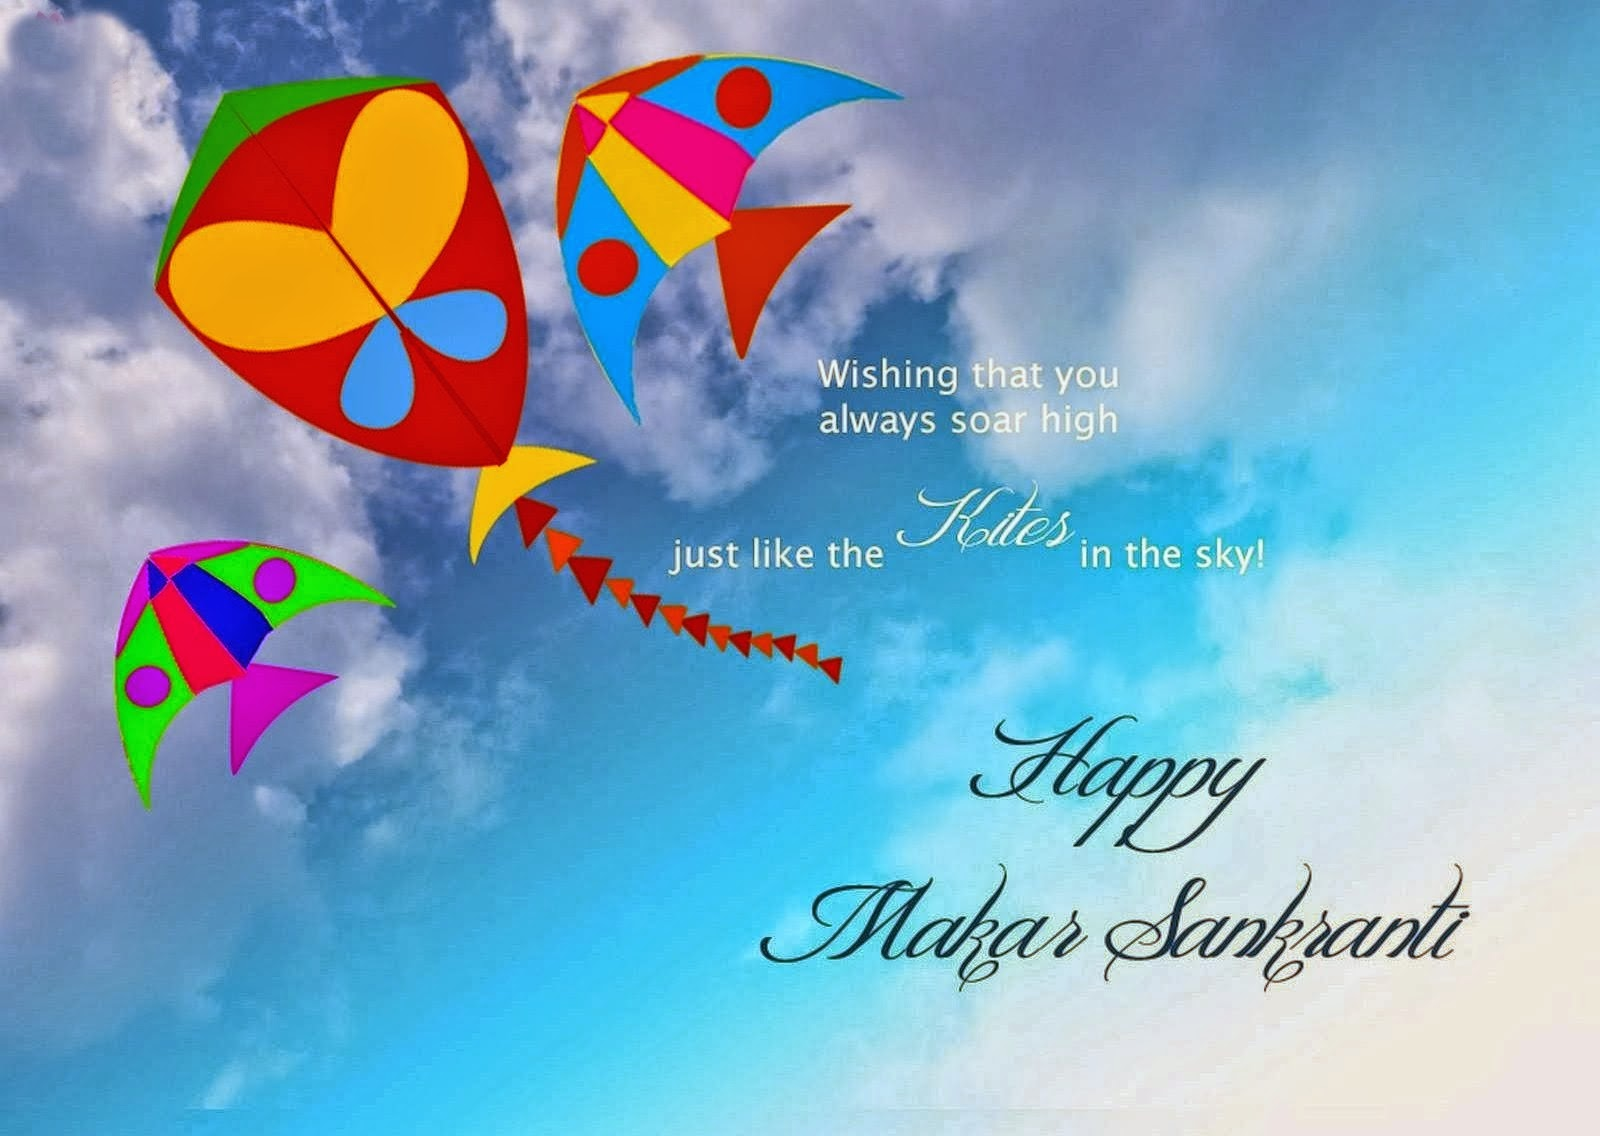 Happy makar sankranti 2015 sms messages text wishes in English Hindi with images picture greetings card and HD wallpaper